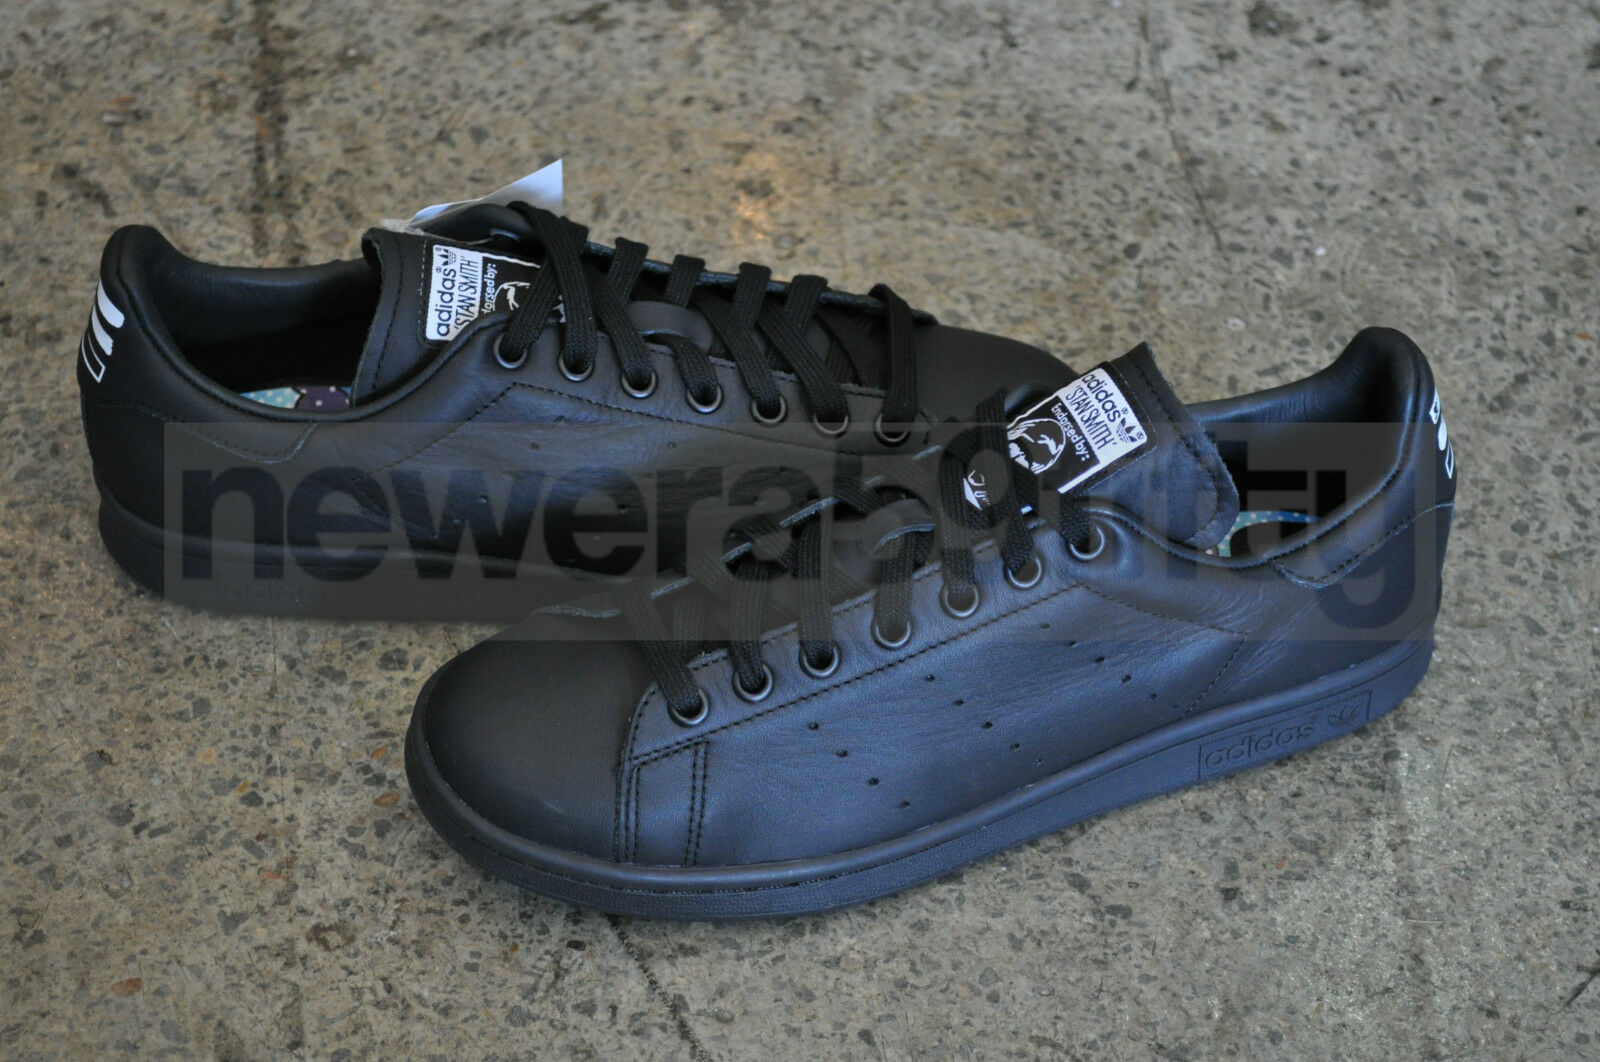 Adidas consorcio X Pharrell Smith Williams Stan Smith Pharrell 'sólido' - Negro 5a5c89